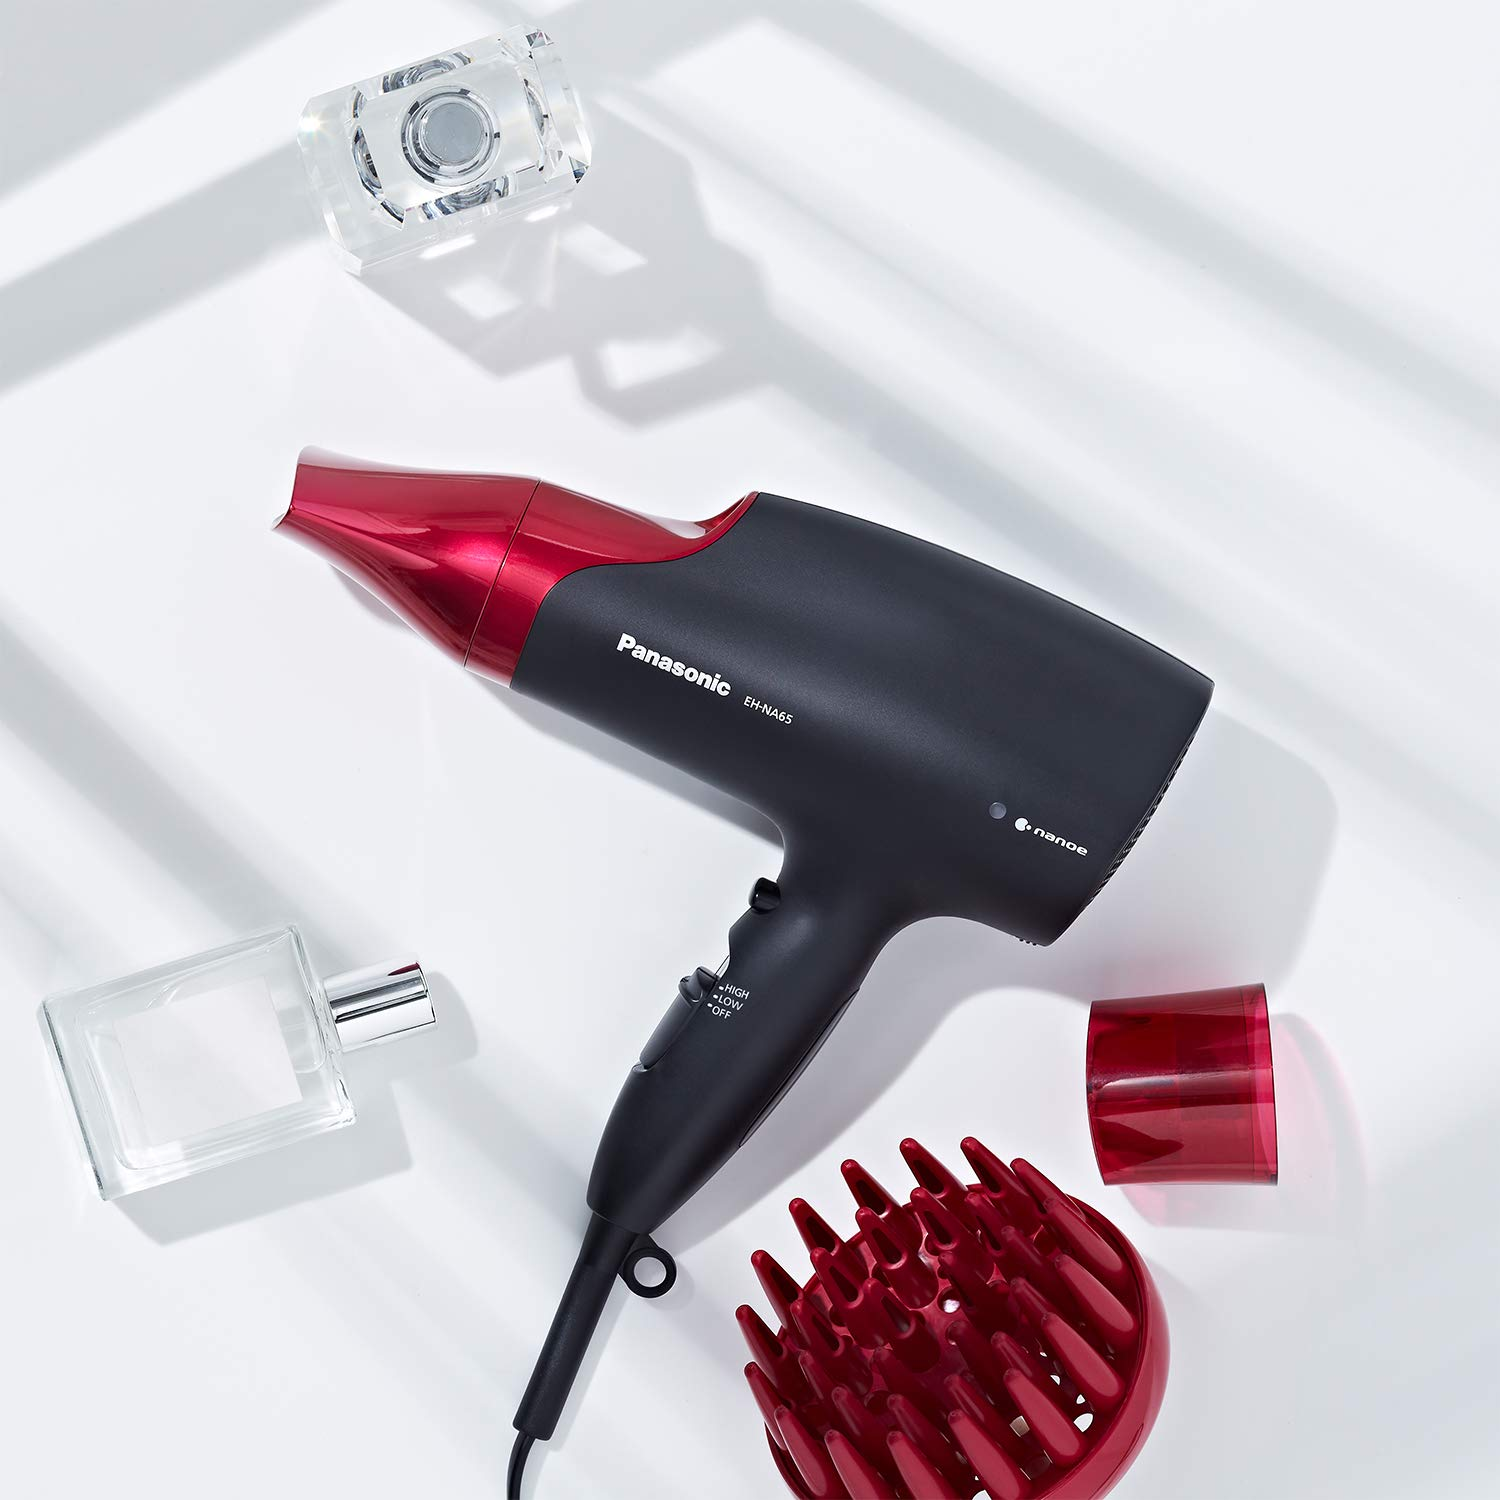 Panasonic EH-NA65-K nanoe Dryer, Professional-Quality with 3 attachments Including Quick Blow Dry Nozzle for Smooth, Shiny Hair, Pink by Panasonic (Image #11)